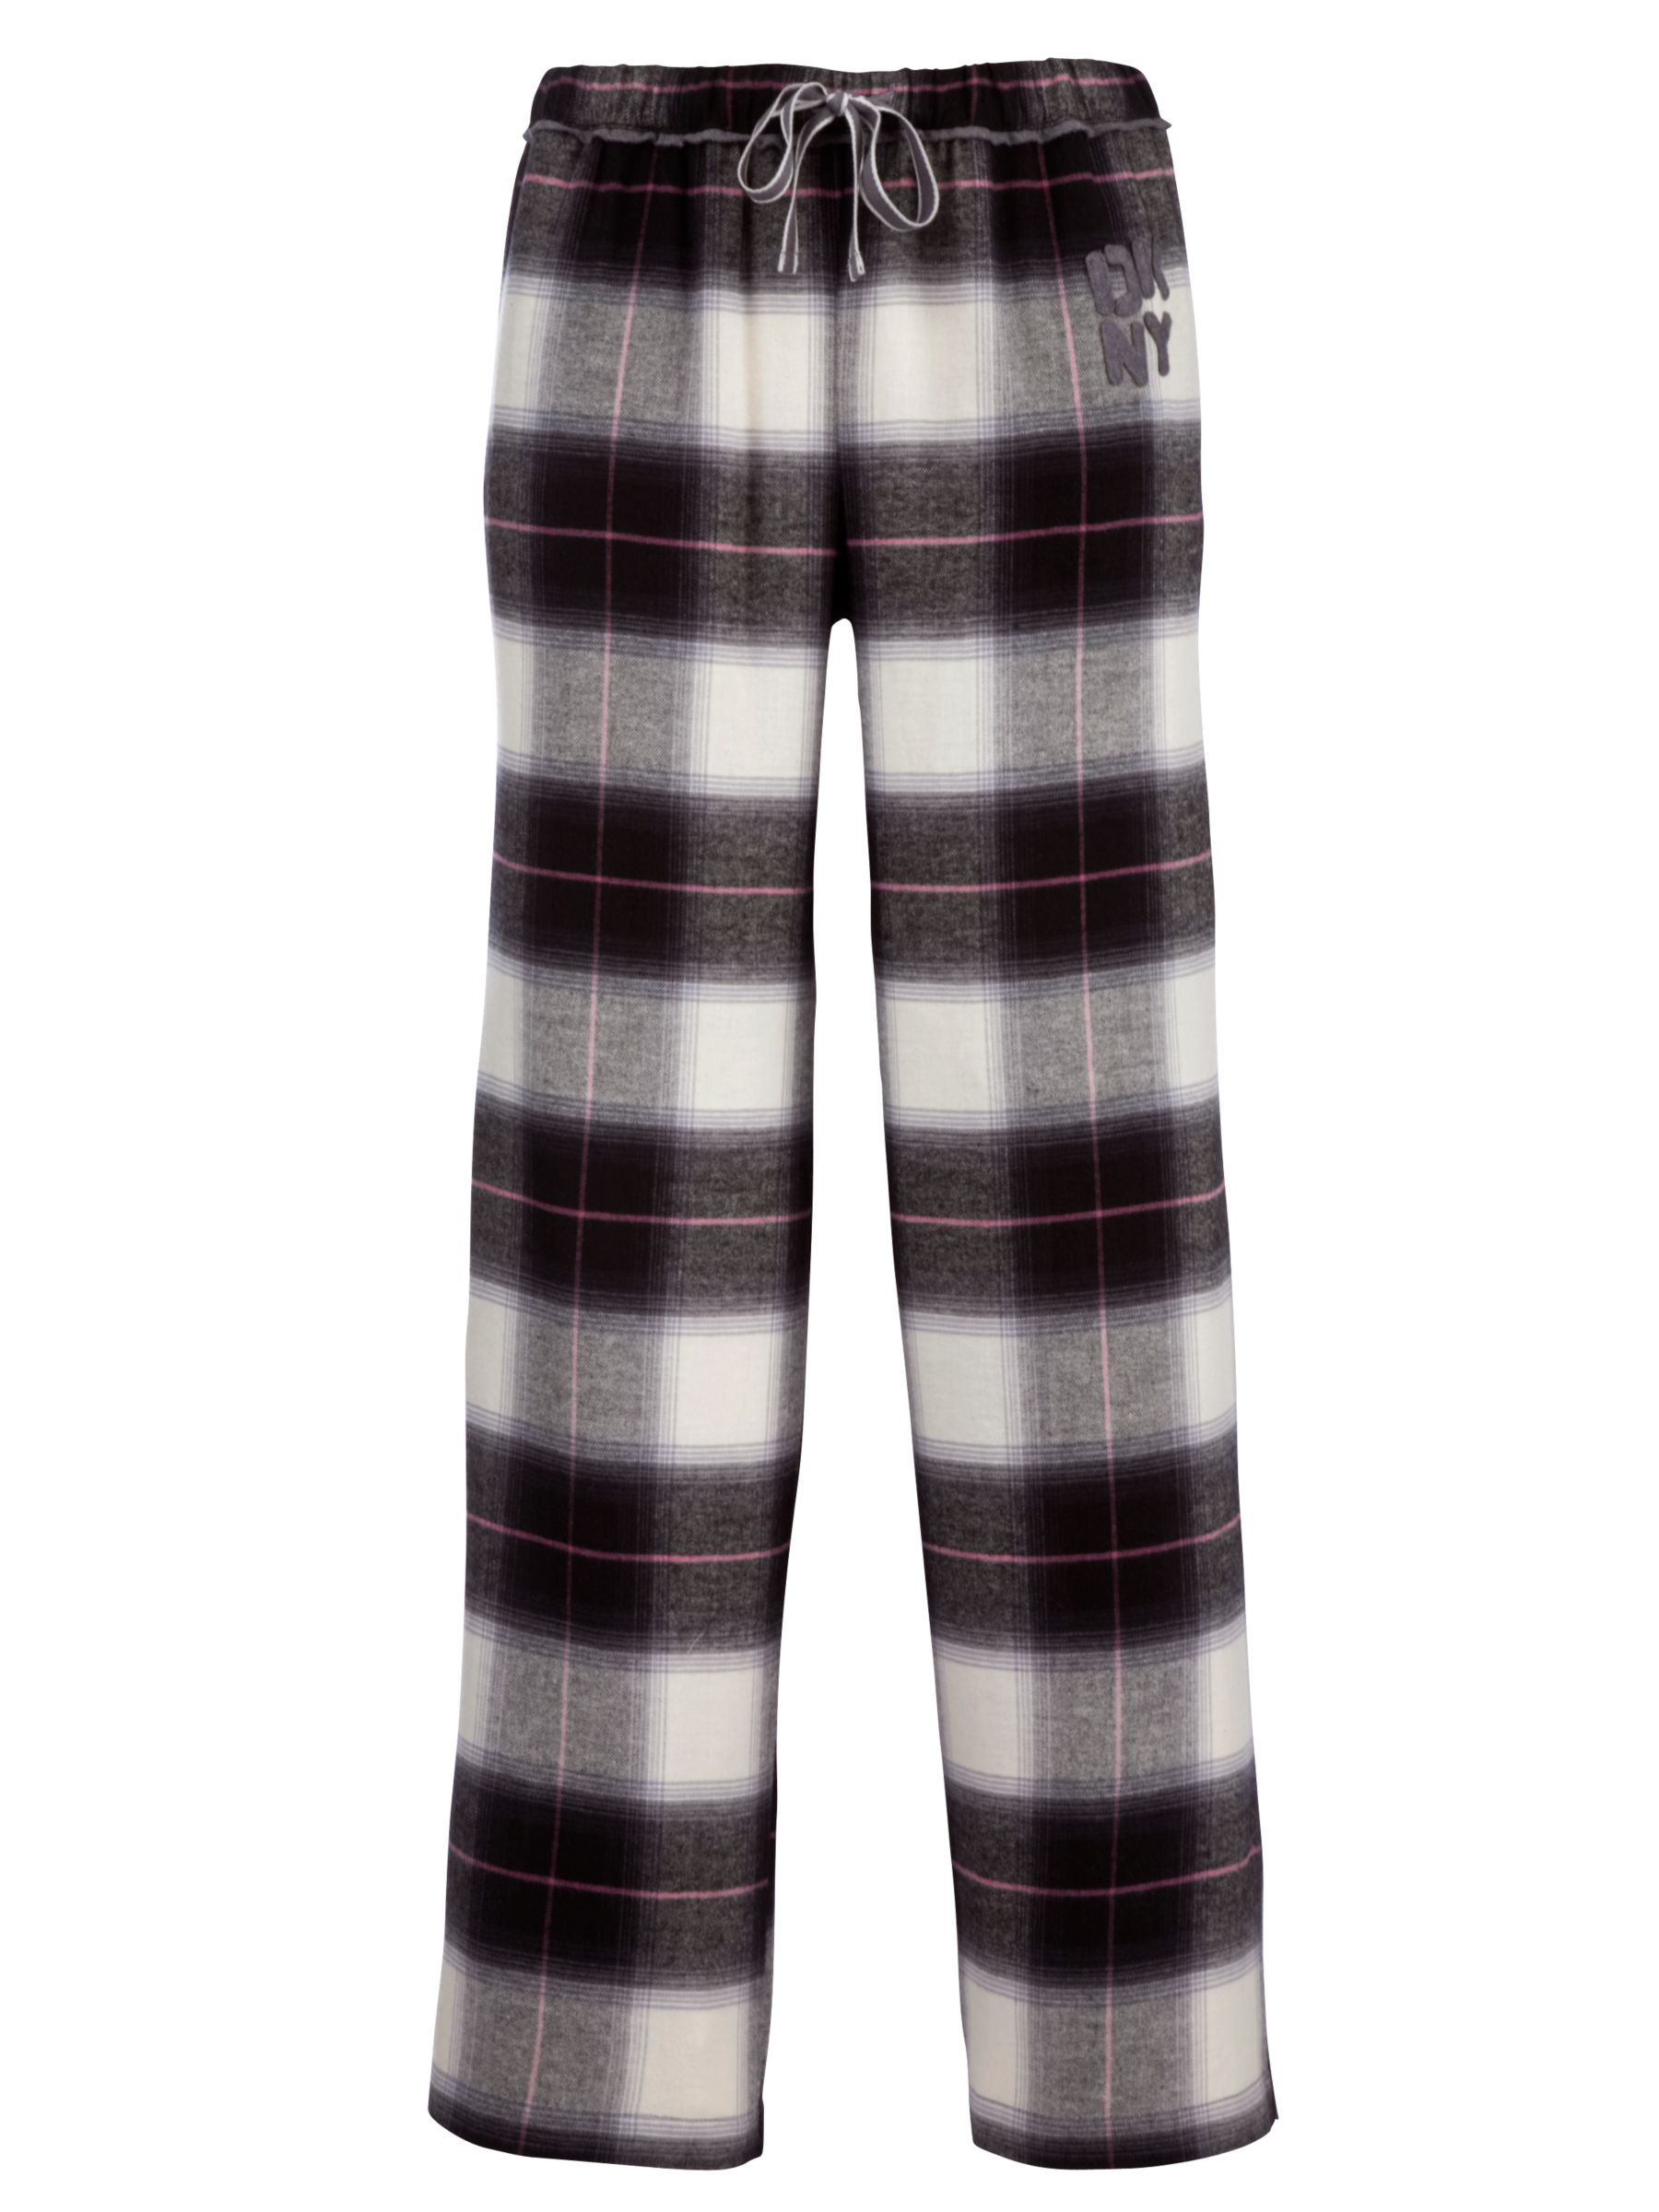 DKNY Pattern Play Check Pyjama Trousers, Grey